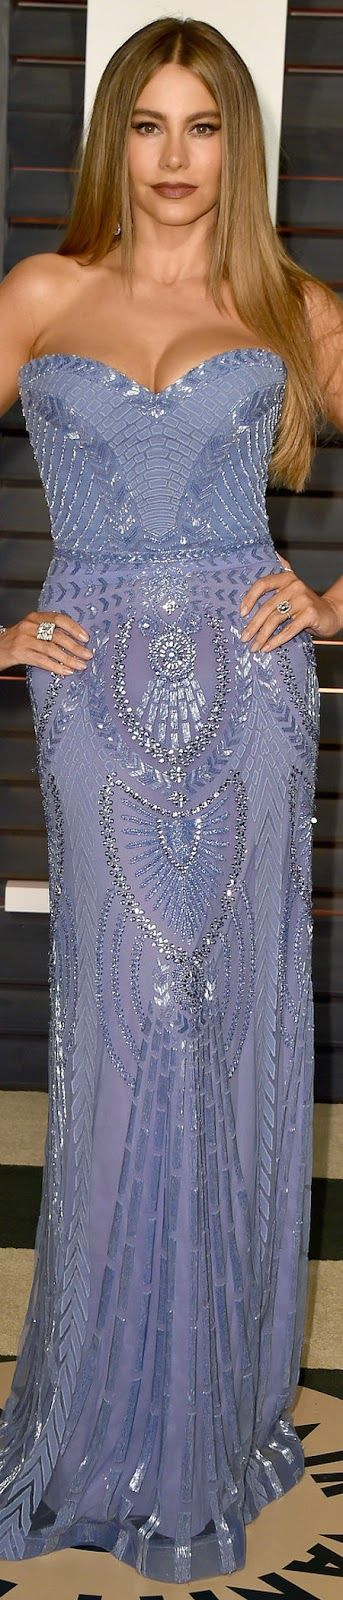 Zuhair Murad ~ Sofia Vergara 2015 Vanity Fair Oscar Party ~ lavender fashion dress